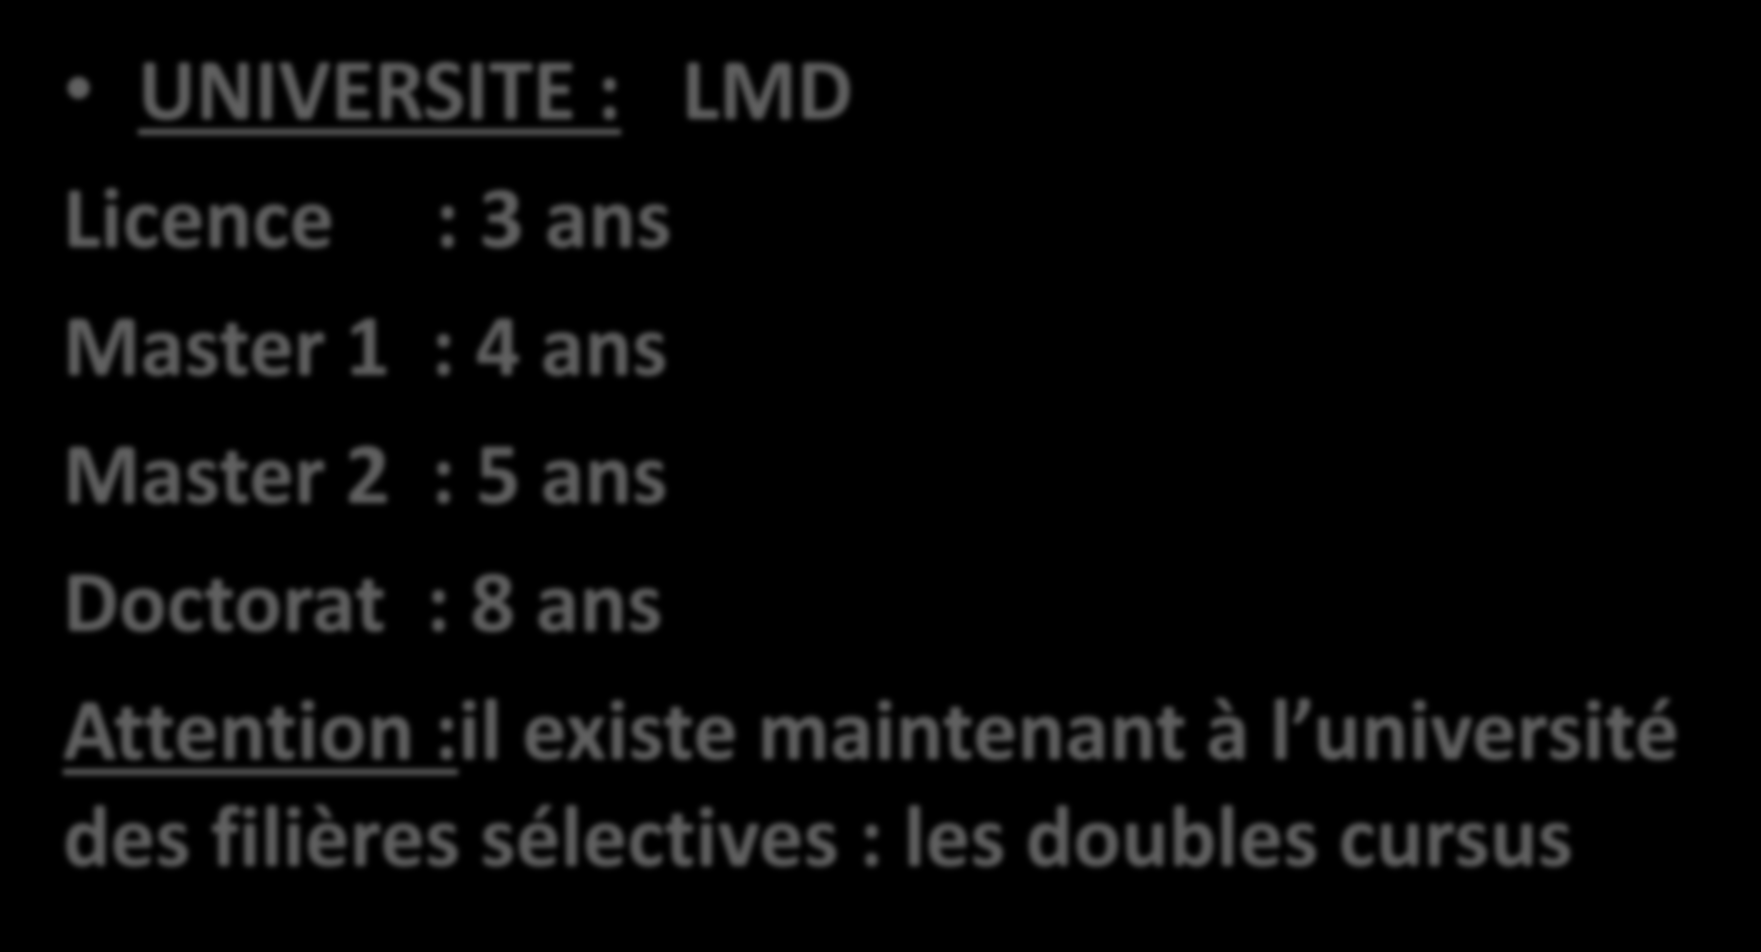 FILIERE «NON-SELECTIVE» UNIVERSITE : LMD Licence : 3 ans Master 1 : 4 ans Master 2 : 5 ans Doctorat